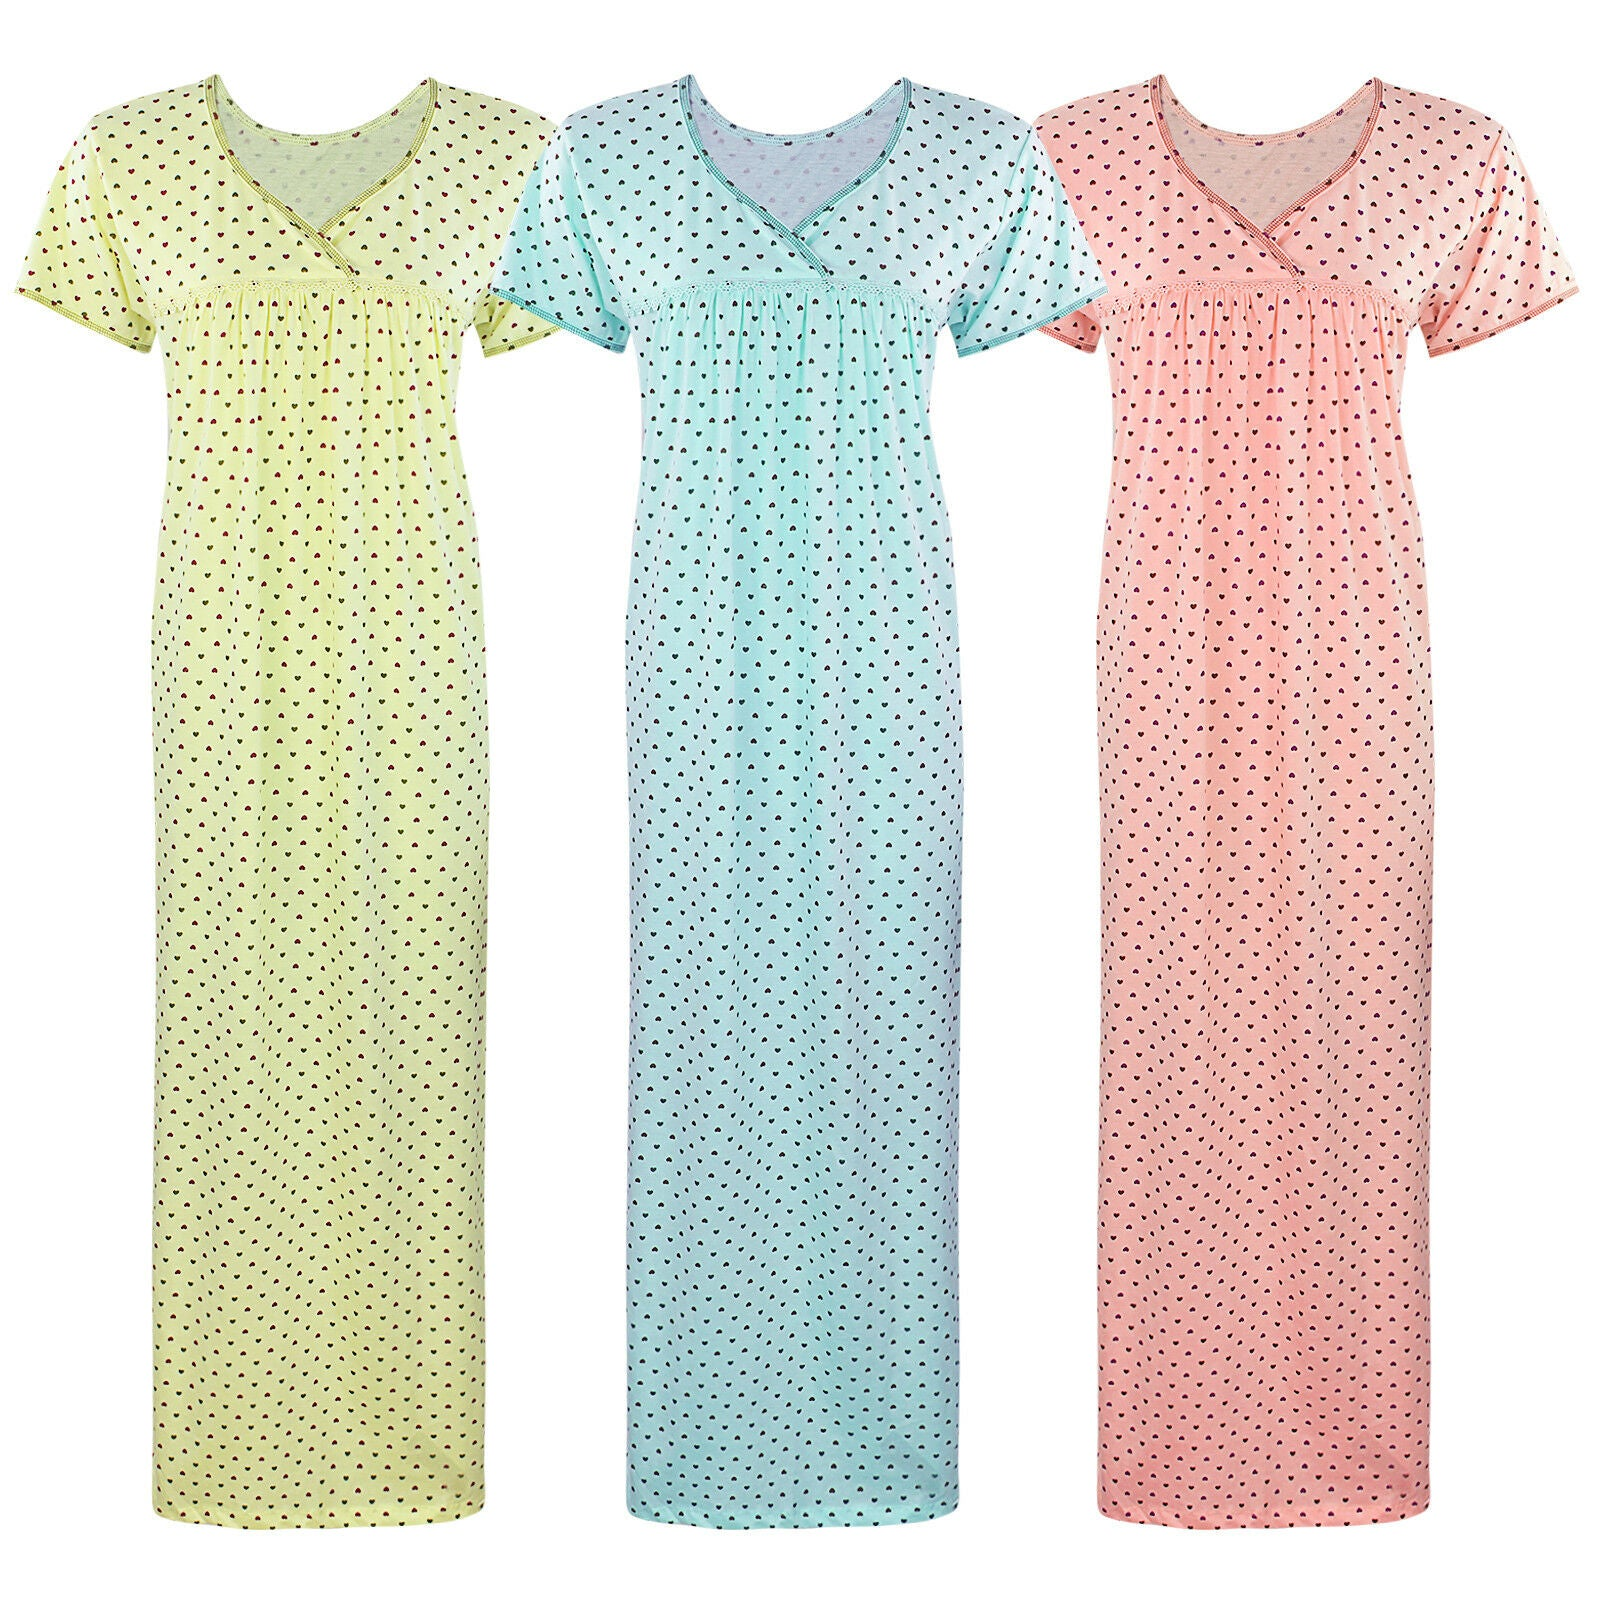 Color: Pink, Sky Blue, Yellow 100% Cotton Heart Print Long Nightie Size: One Size